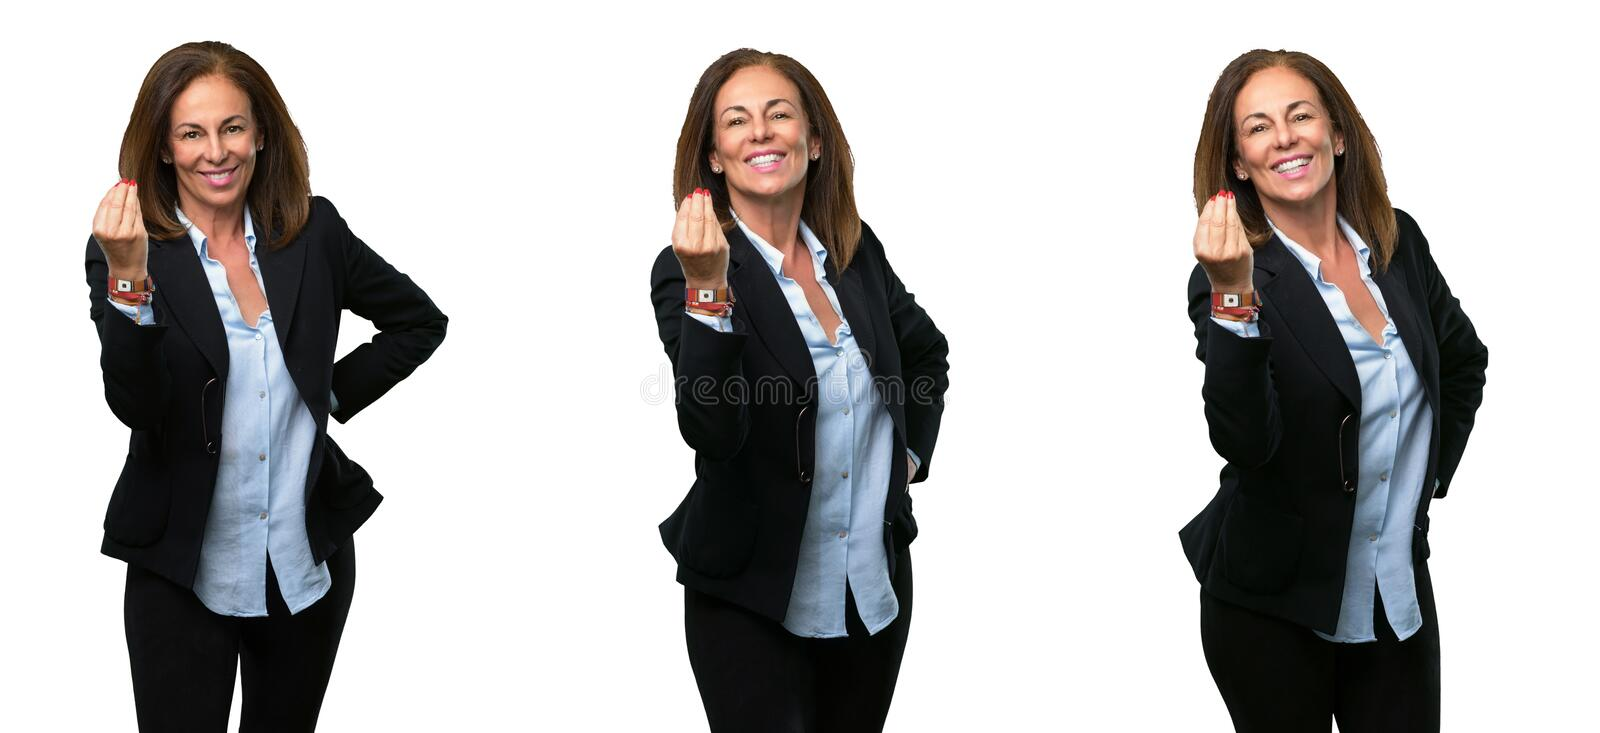 Middle age business woman with long hair stock images